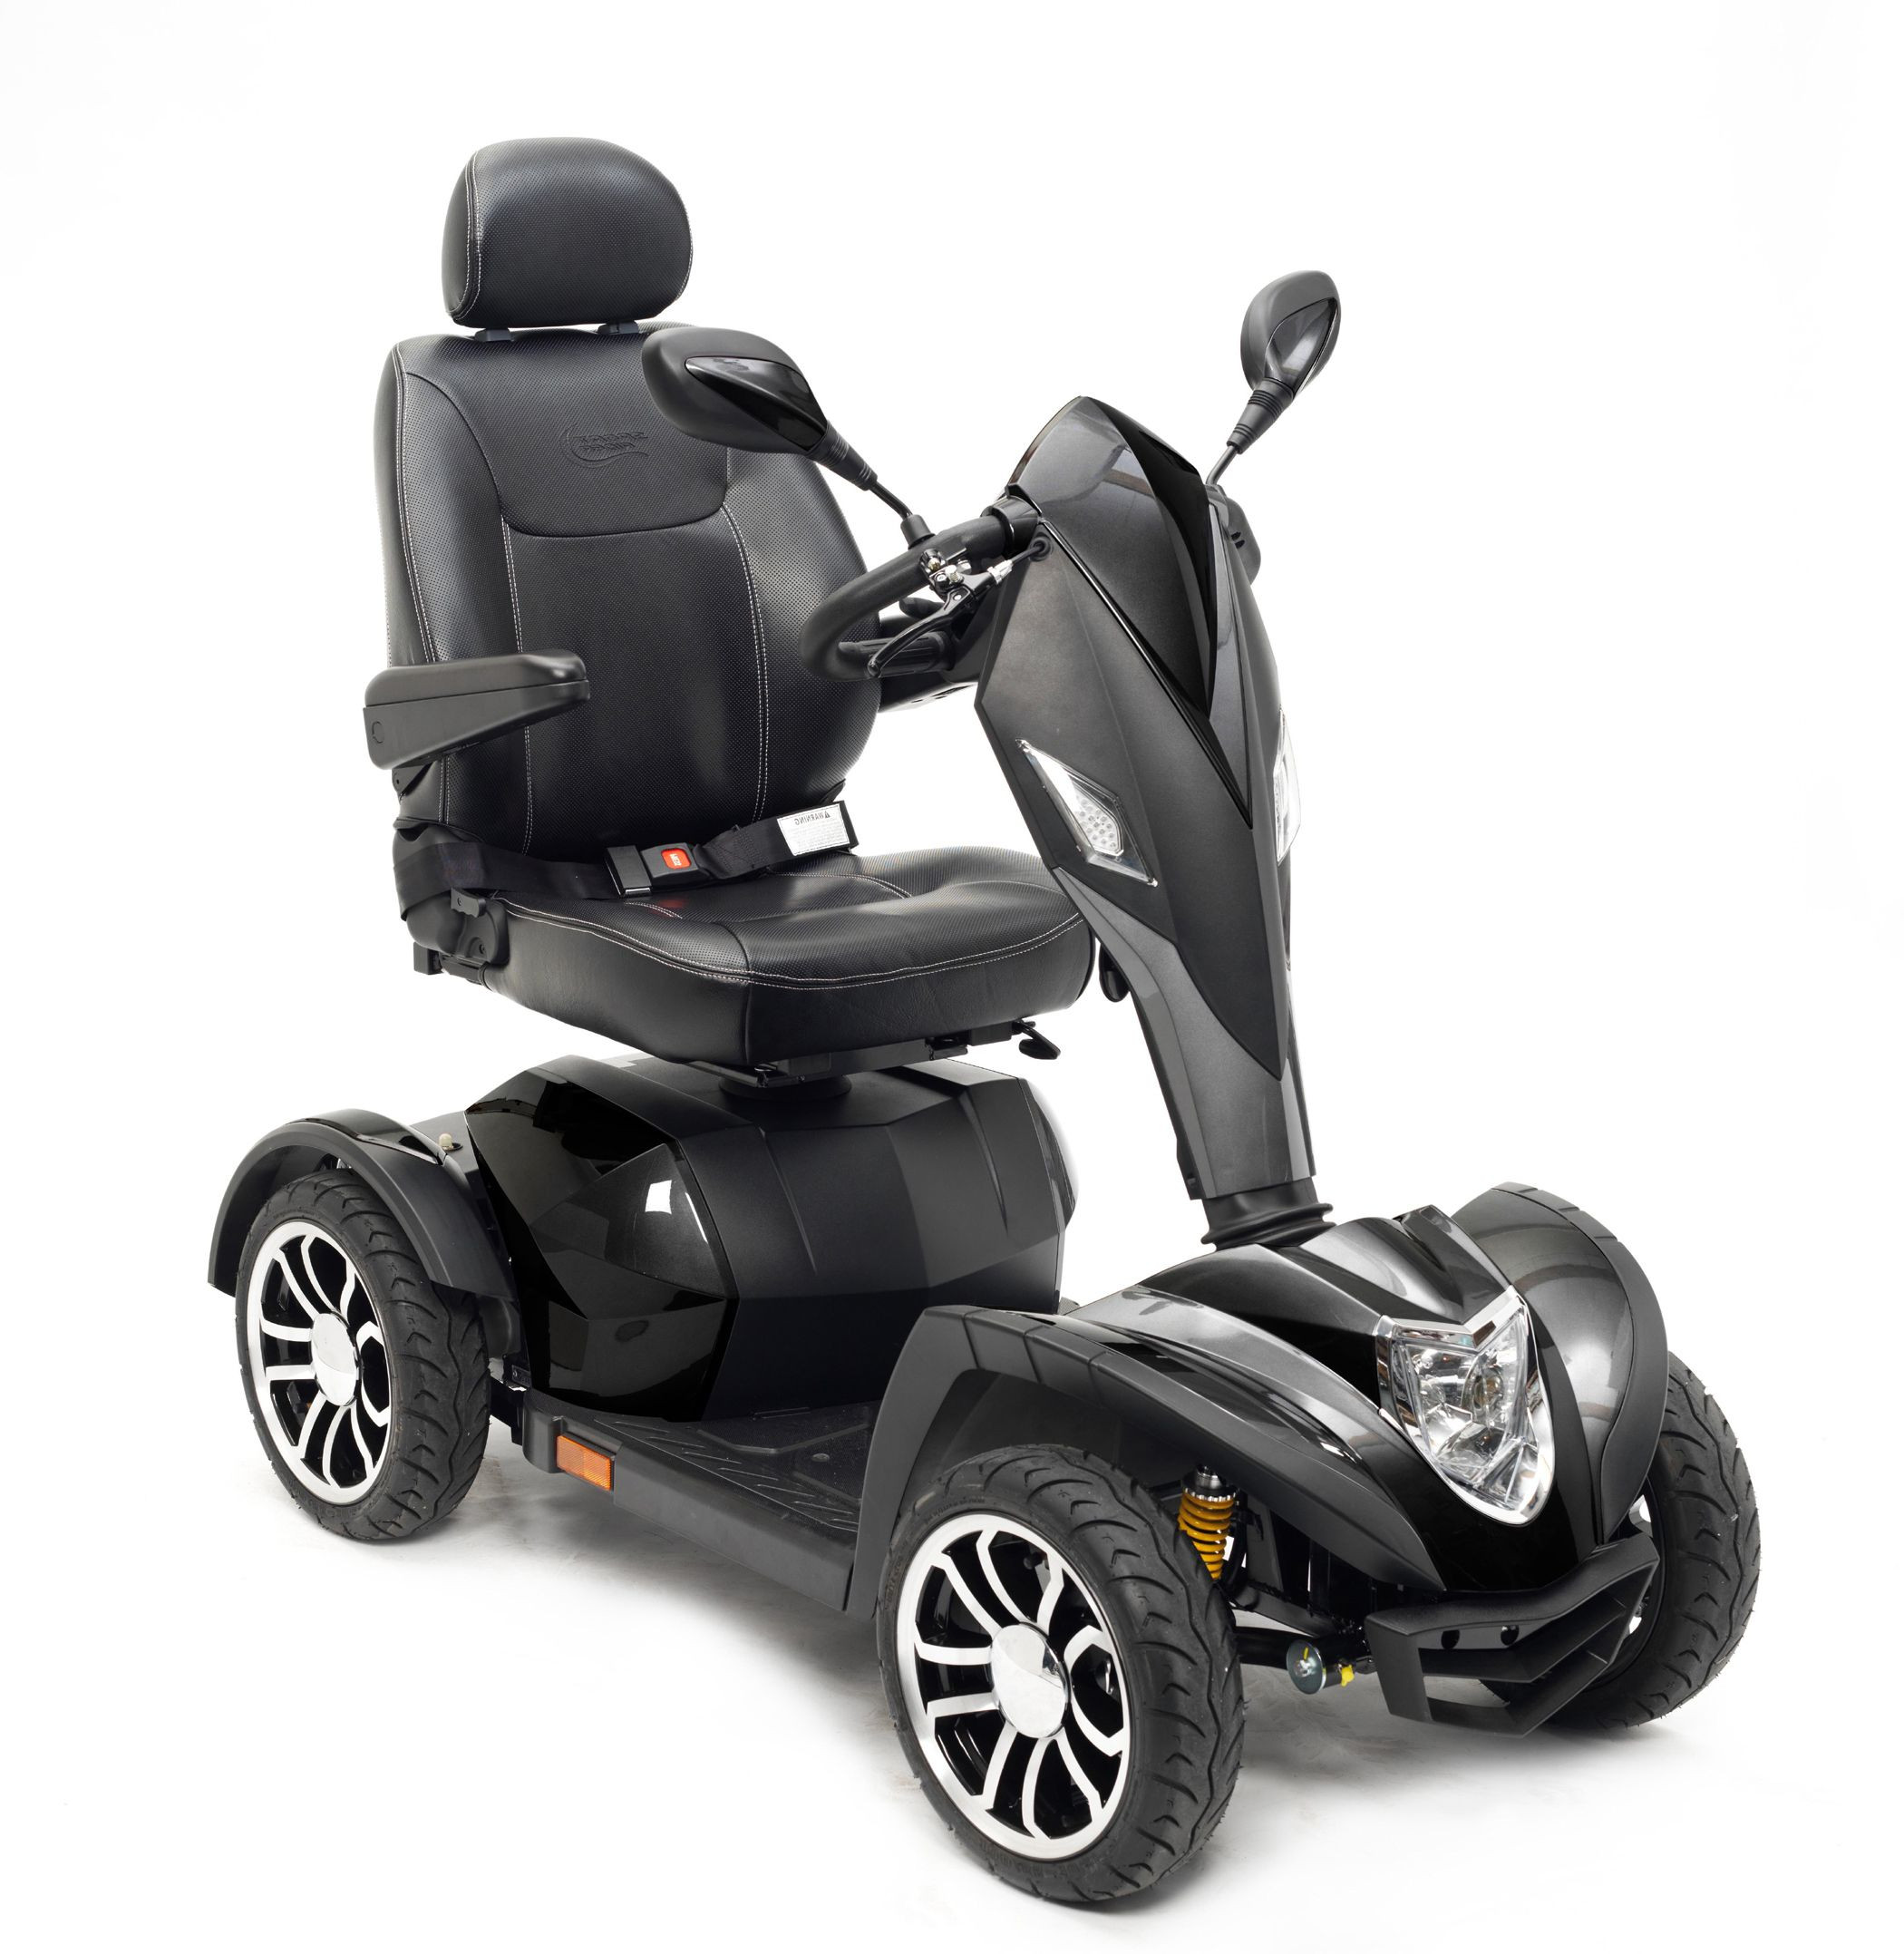 Hoveround Chair Drive Cobra Gt4 Mobility Scooter Lowest Prices Tax Free